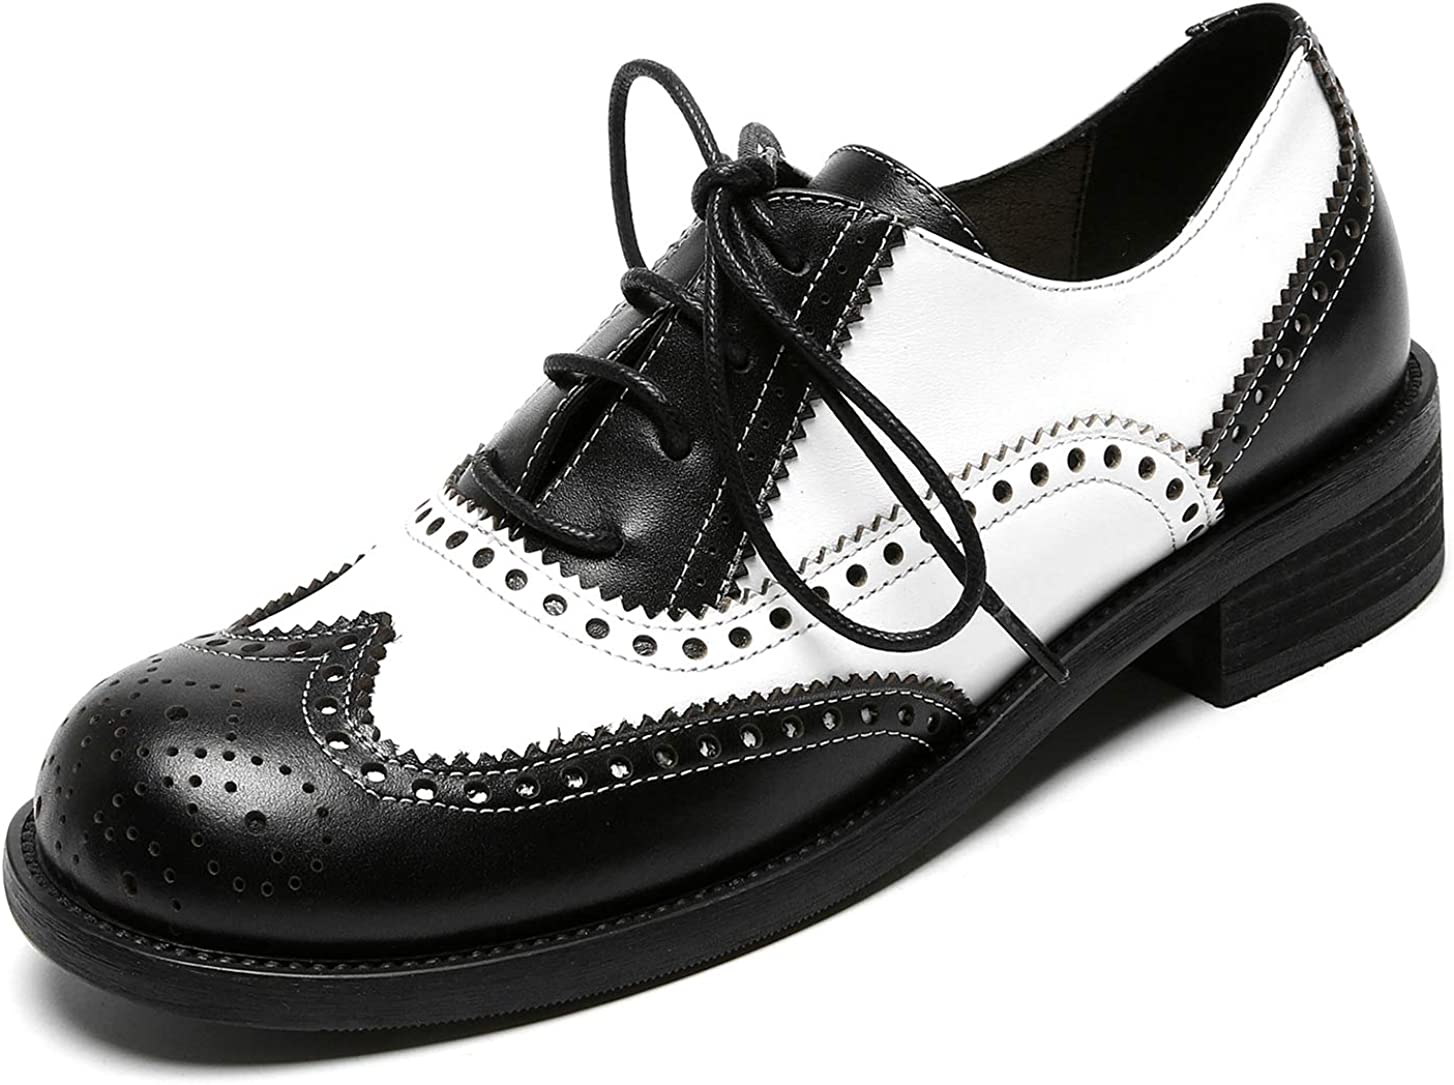 U-lite Women's Mid-Heel Perforated Lace-up Wingtip Close Front Leather Flat Oxfords Vintage Oxford Shoes